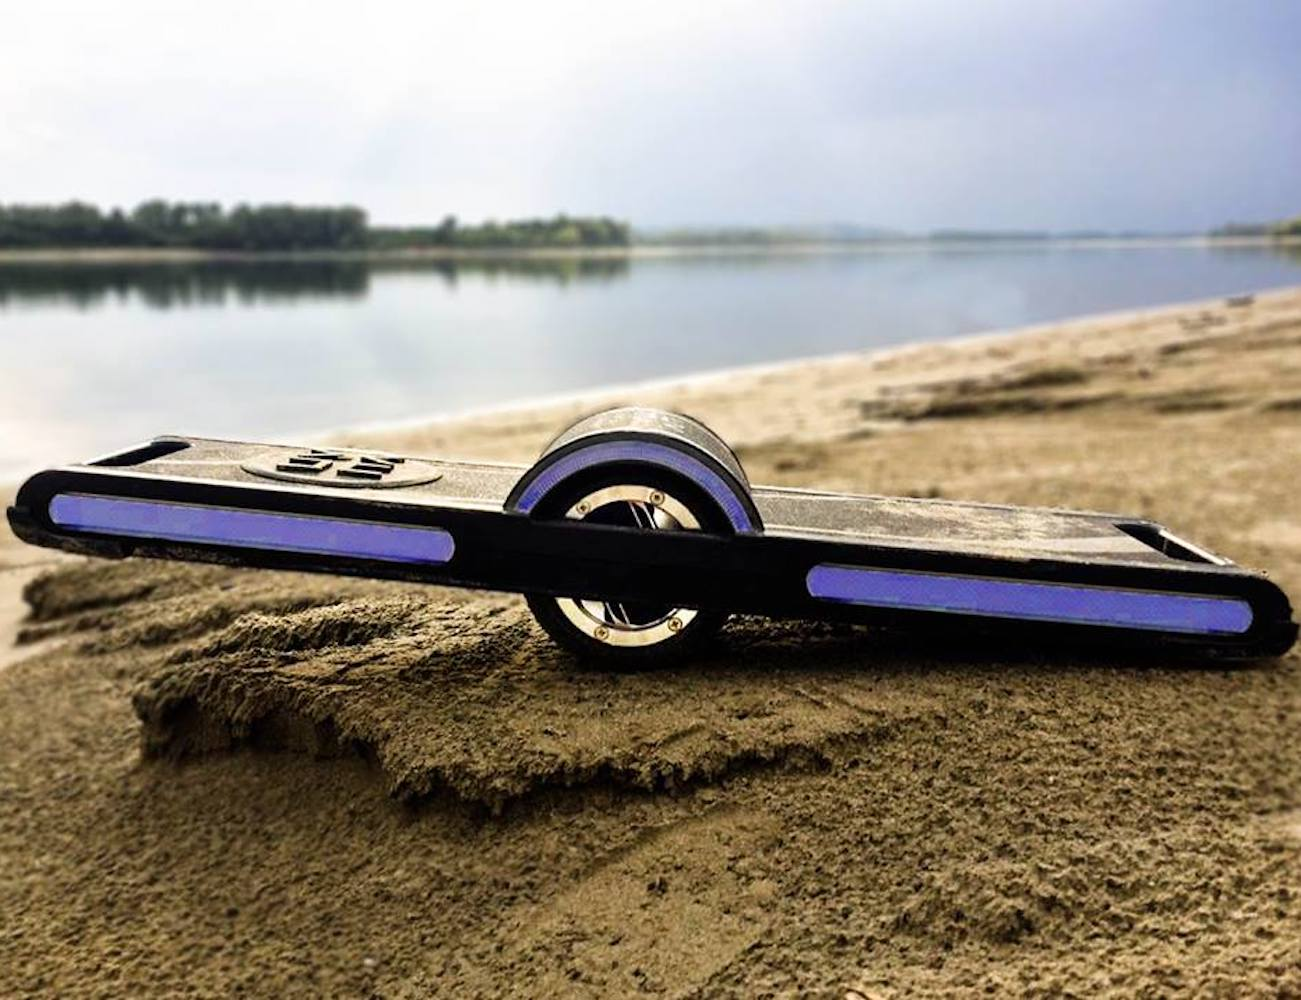 HX Urban Stabilizing Hoverboard keeps you upright and steady